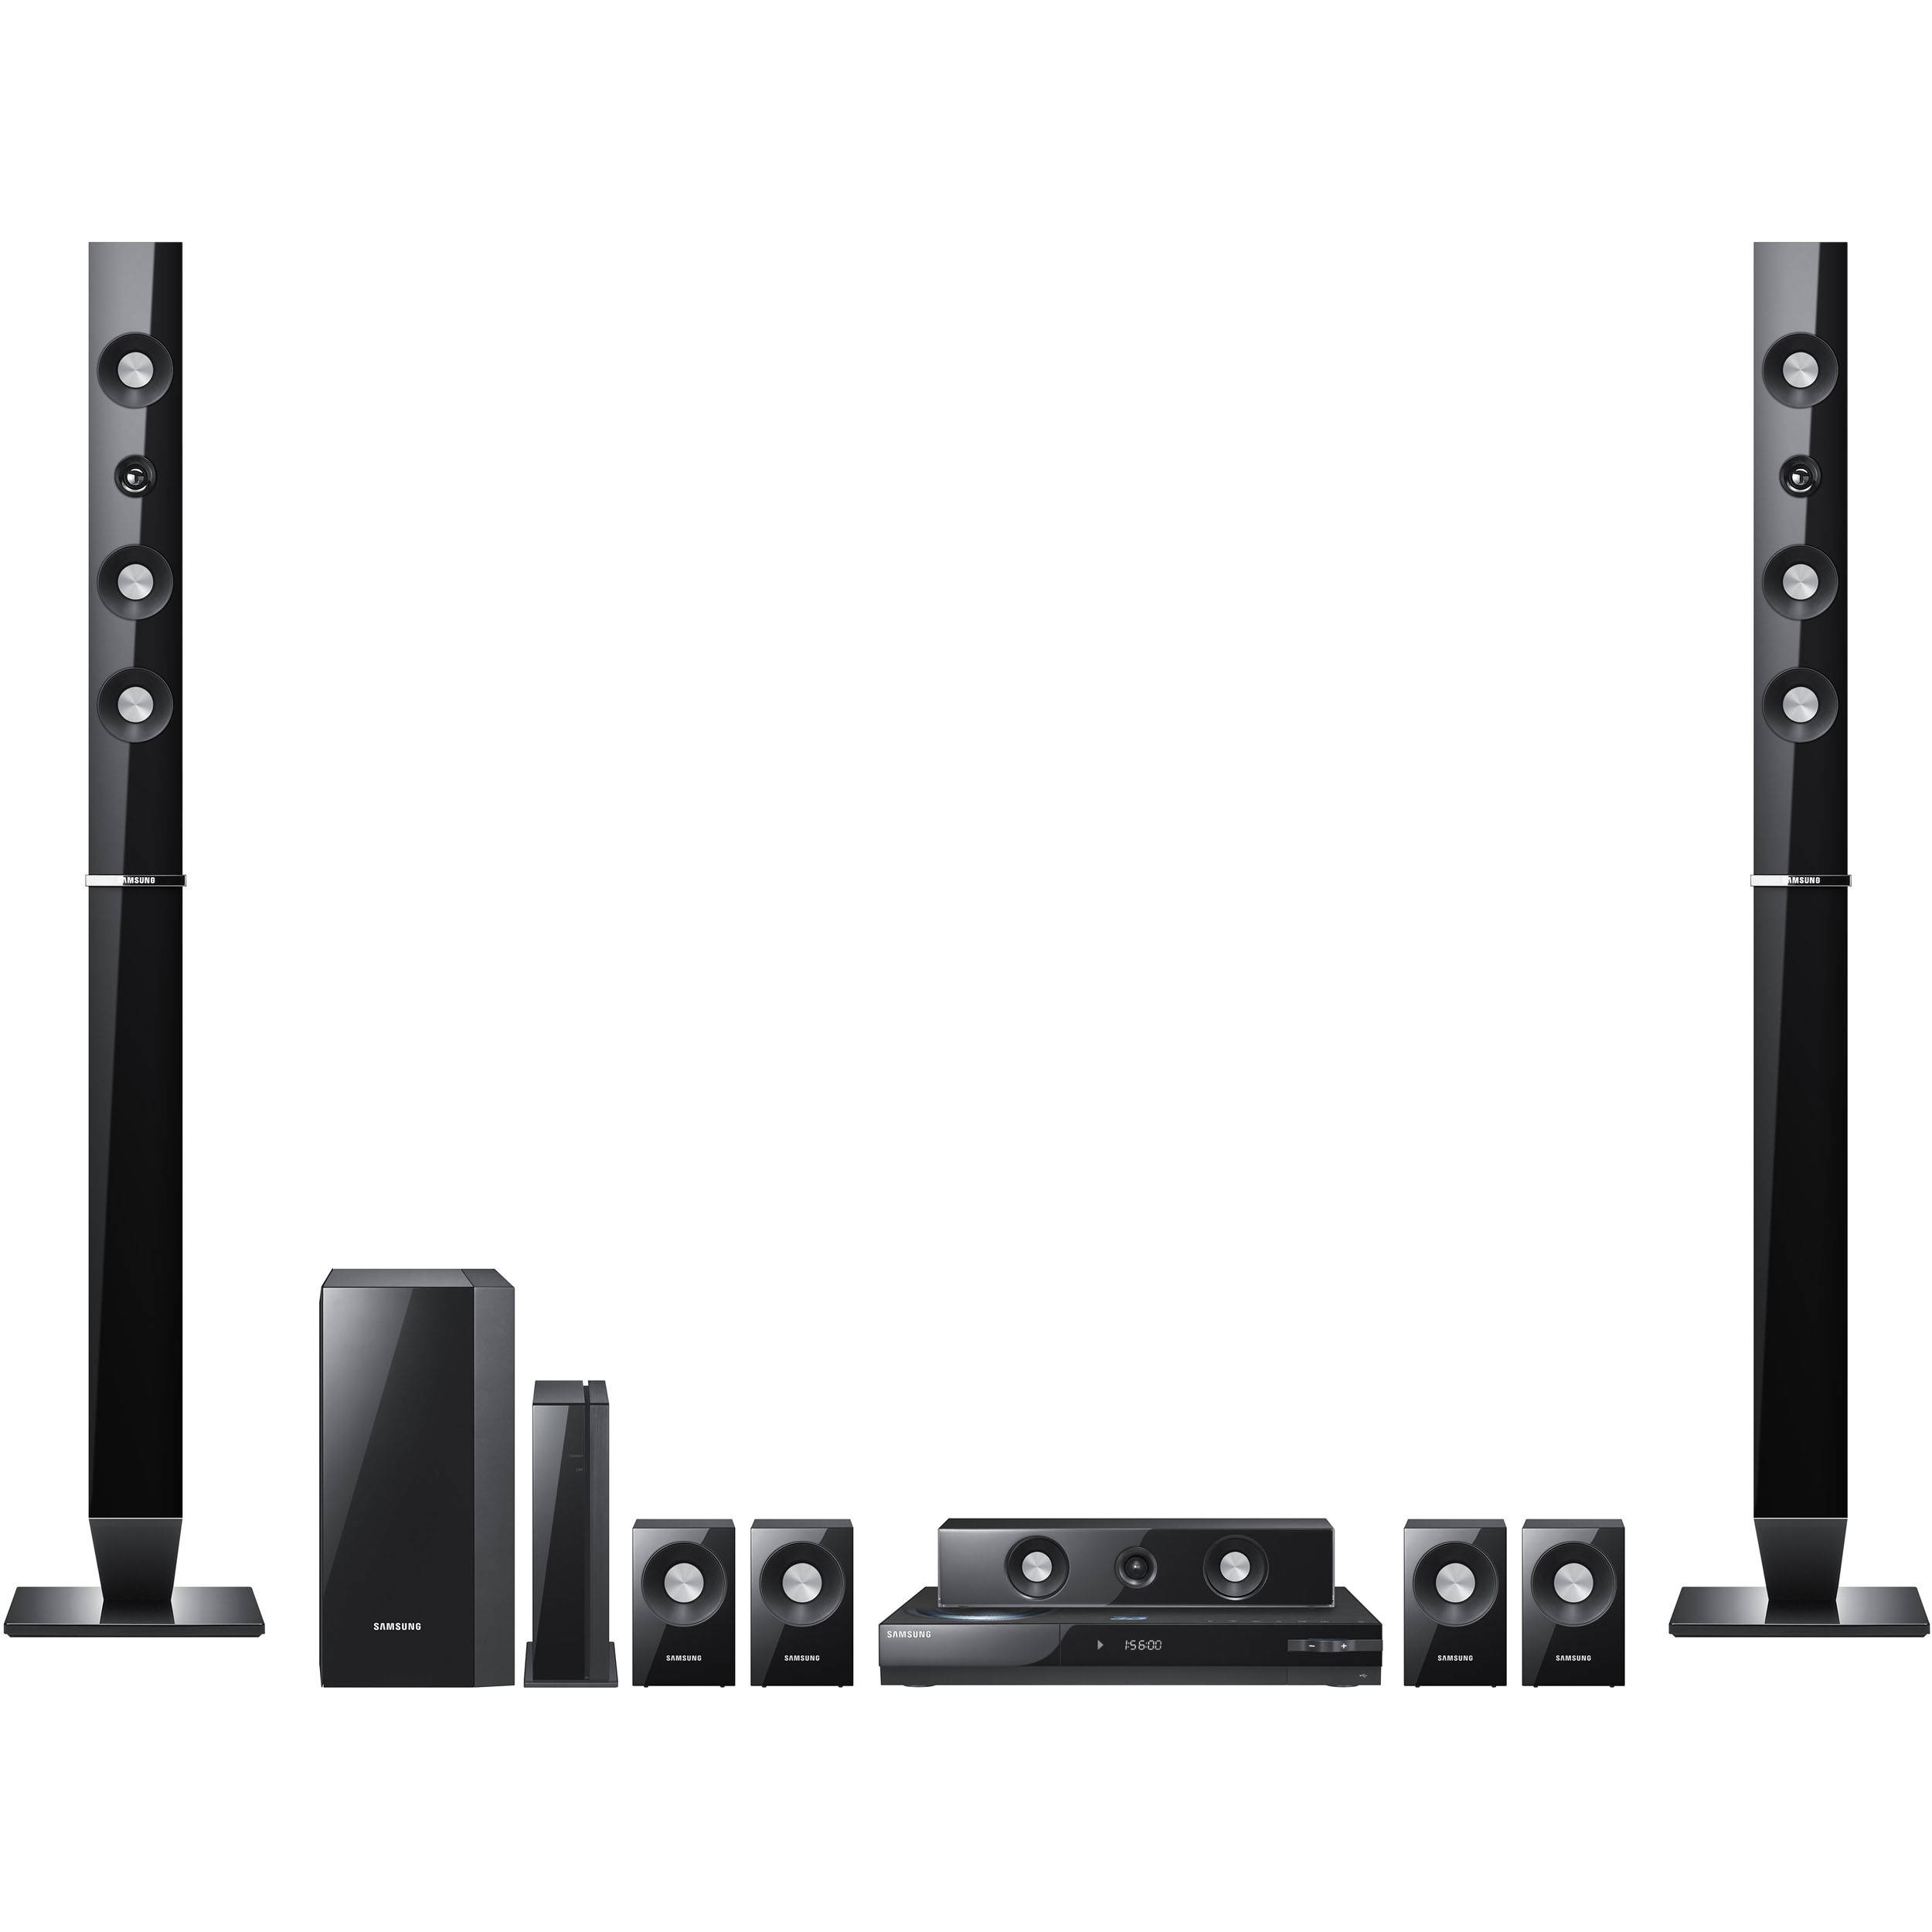 samsung ht c6930w 7 1 channel blu ray home theater ht. Black Bedroom Furniture Sets. Home Design Ideas